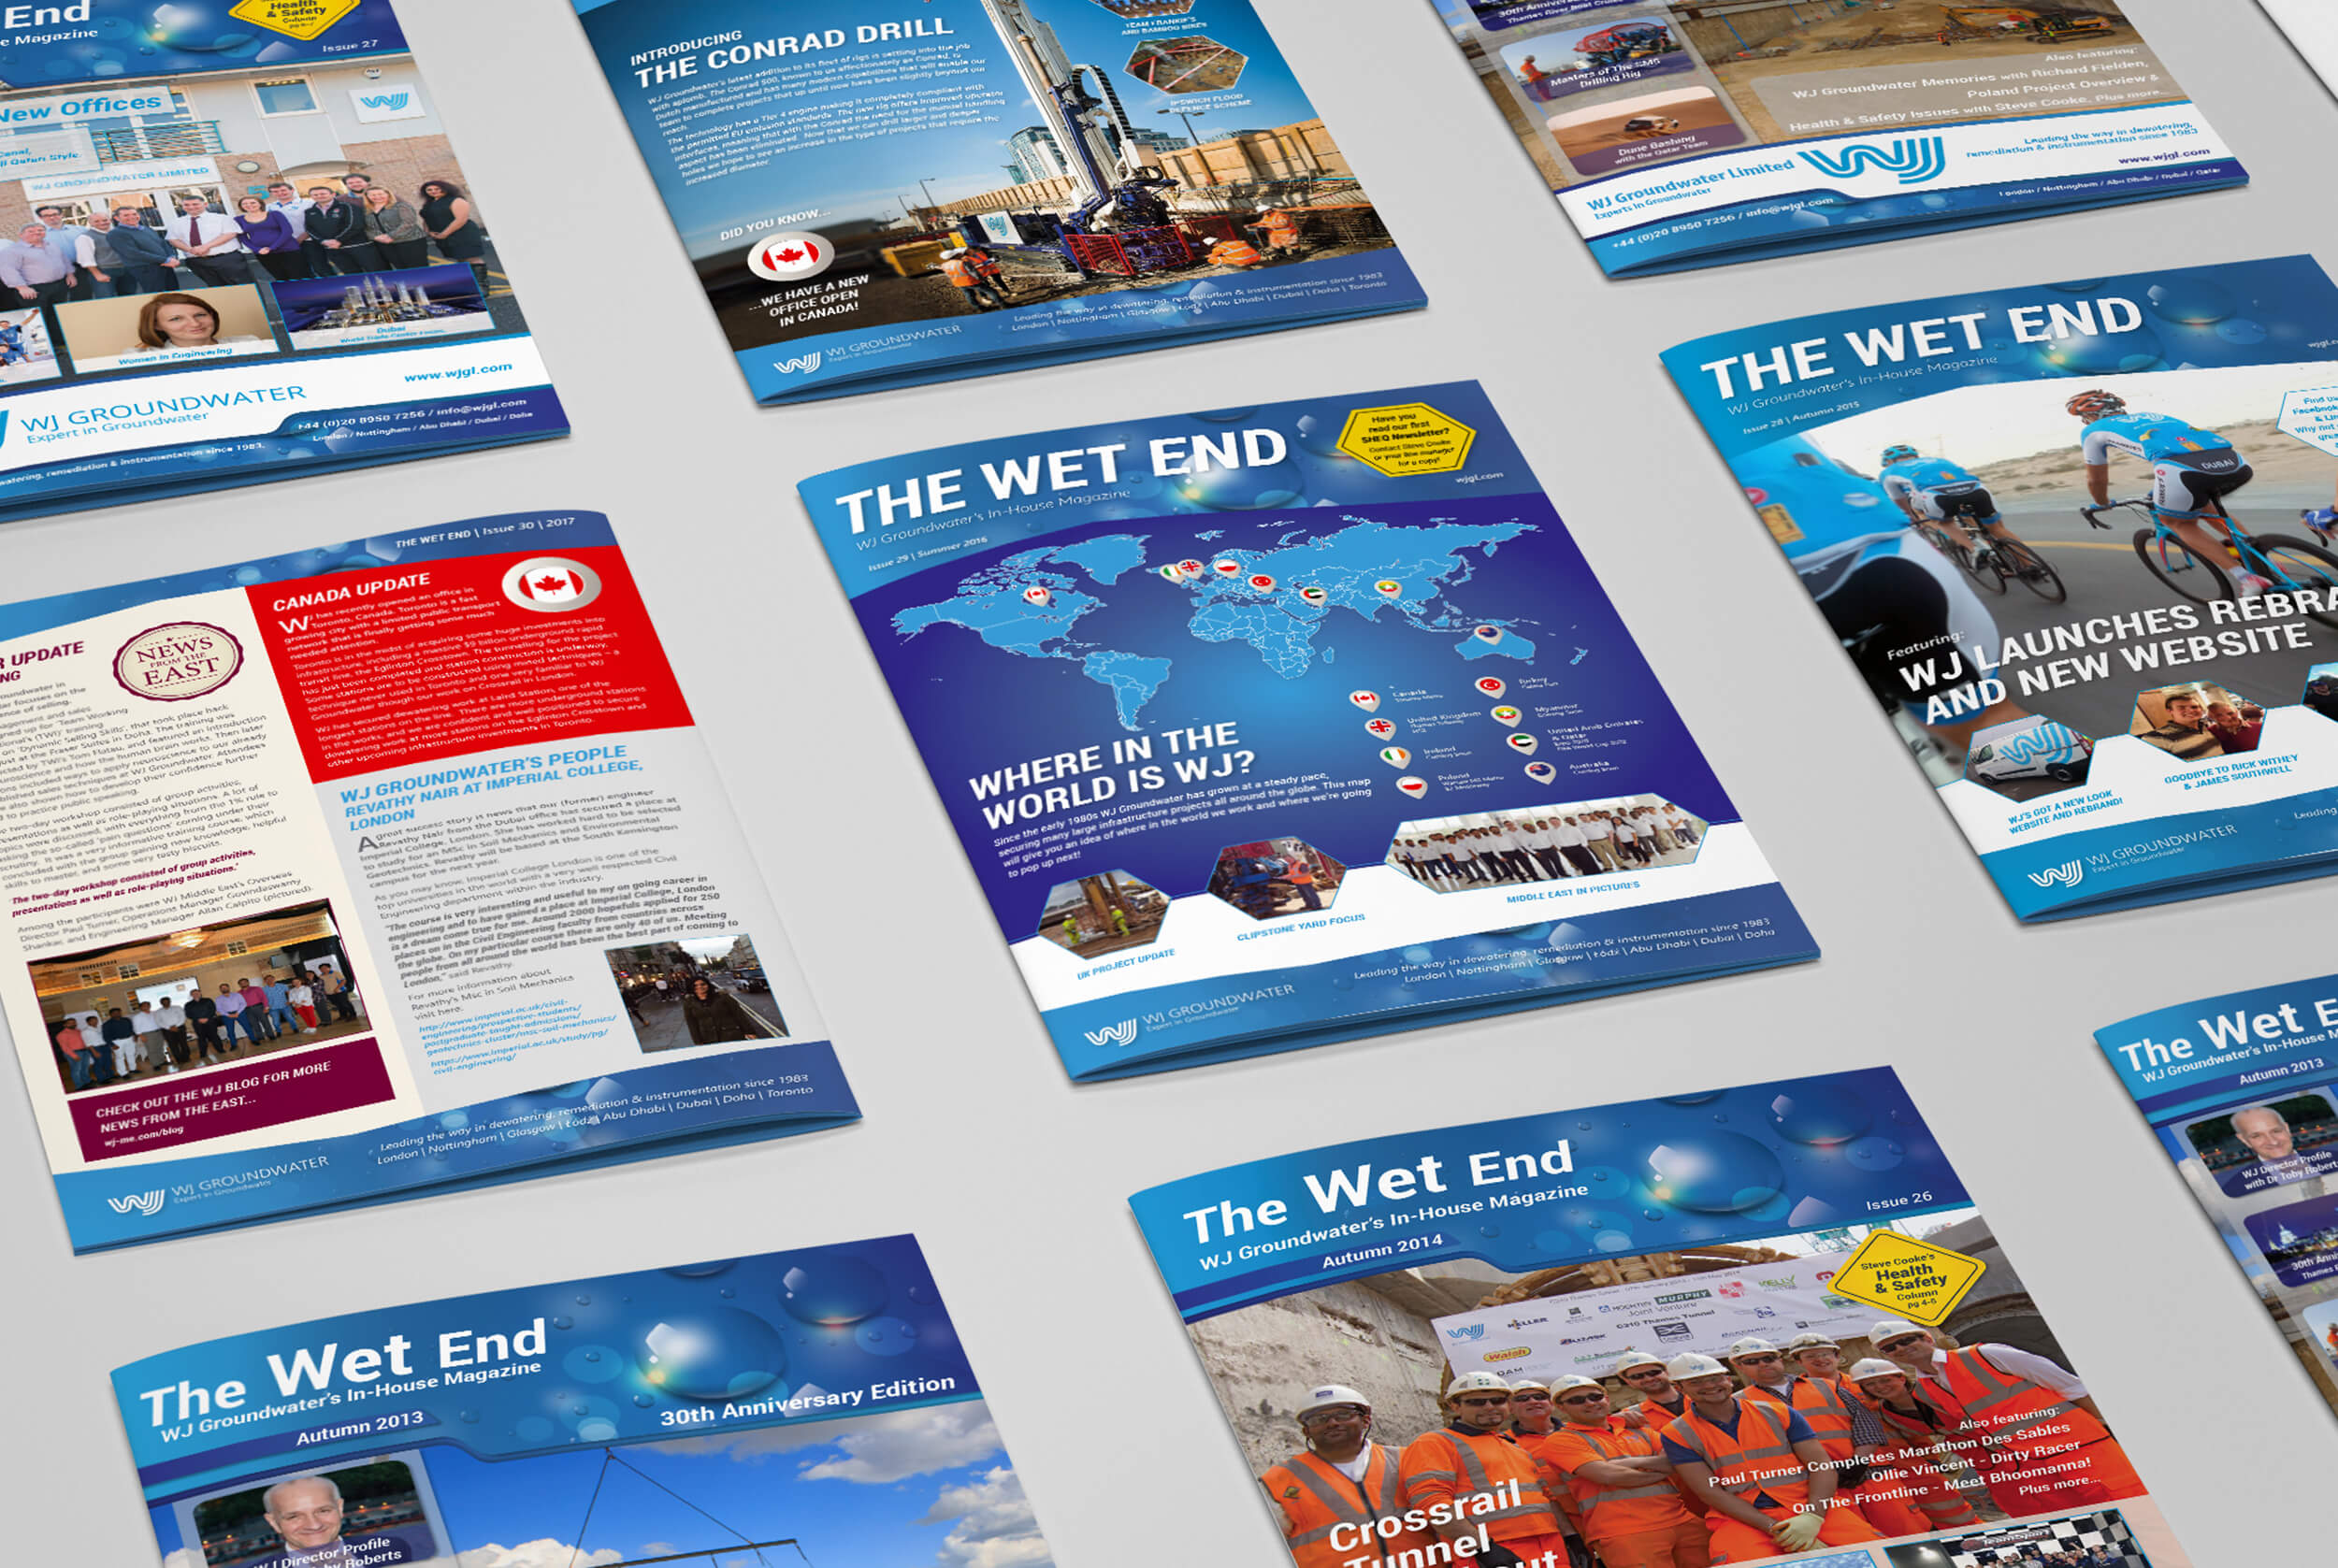 The Wet End - WJ Groundwater's Company Newsletter